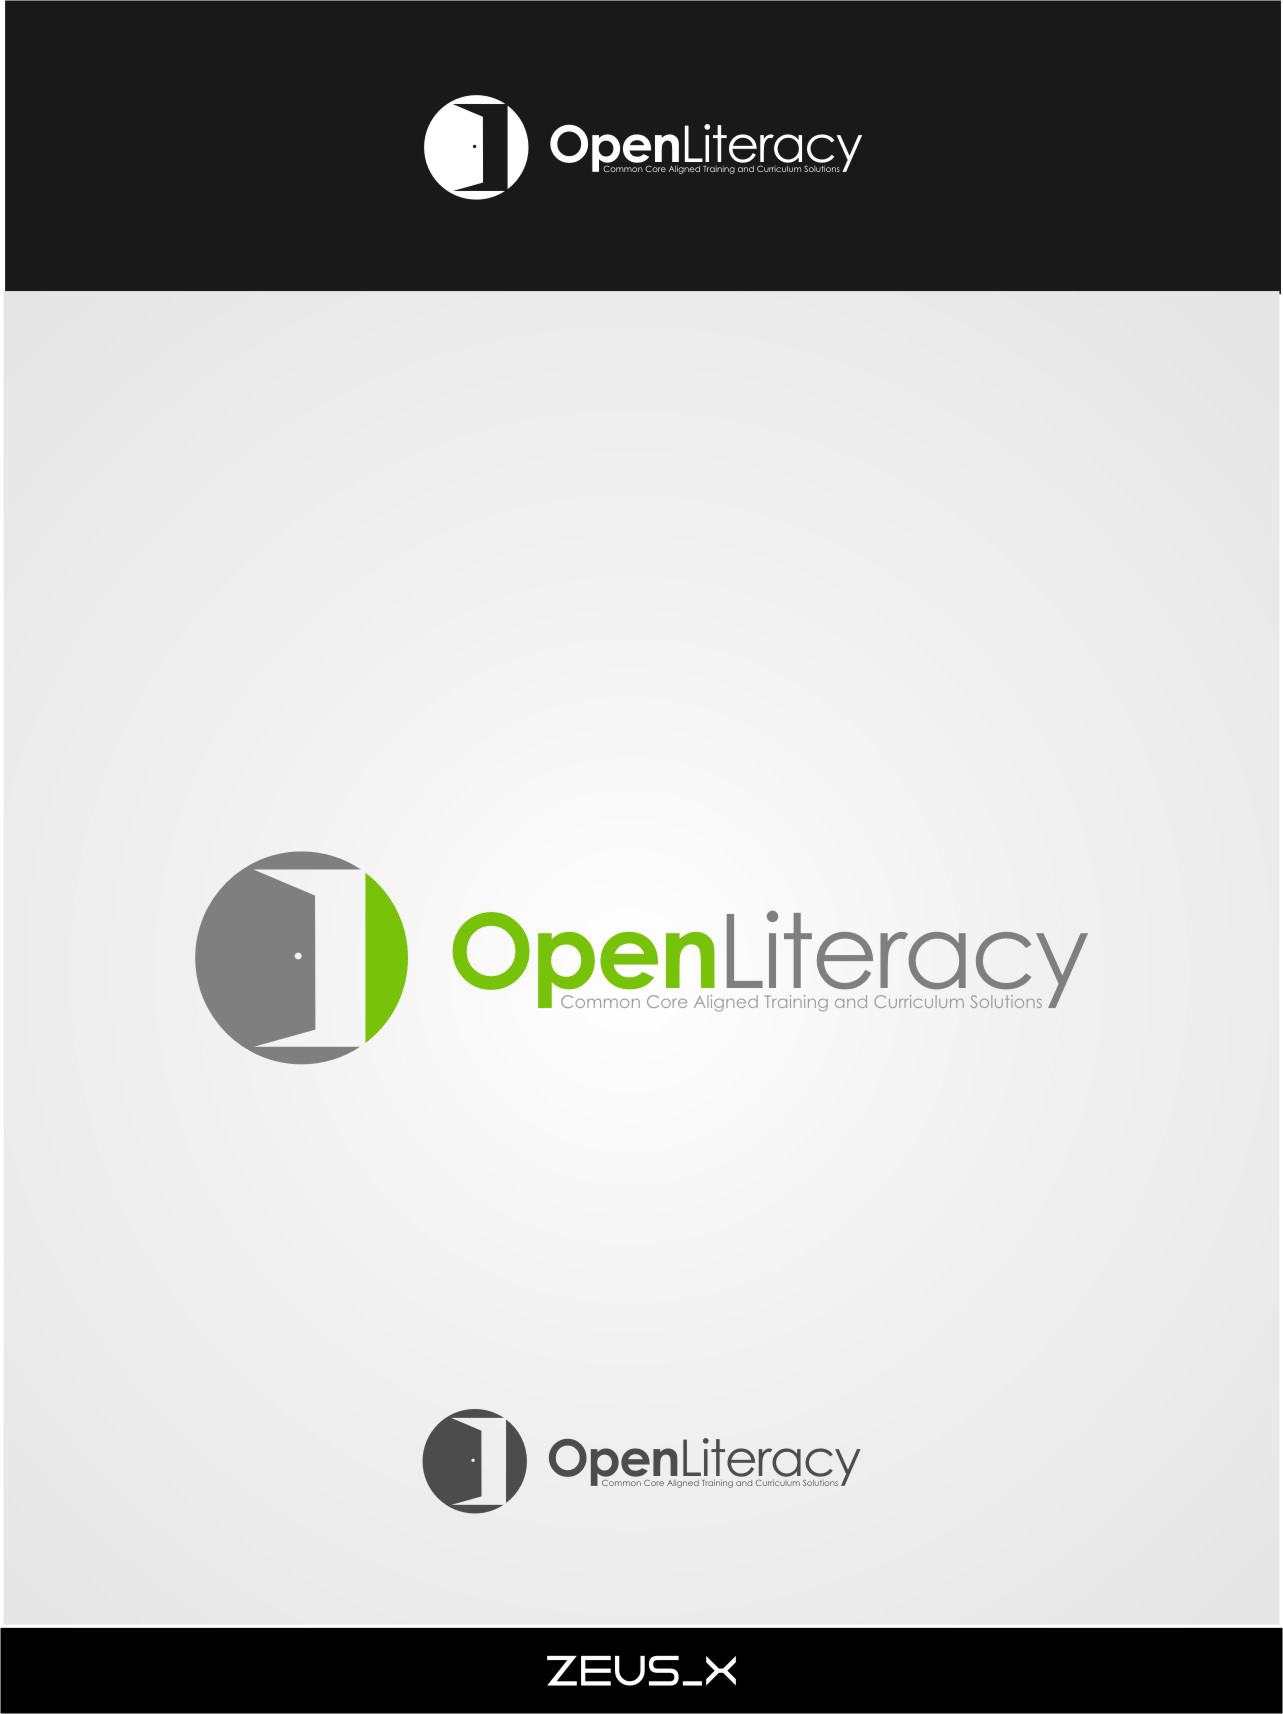 Logo Design by RasYa Muhammad Athaya - Entry No. 144 in the Logo Design Contest Inspiring Logo Design for OpenLiteracy.